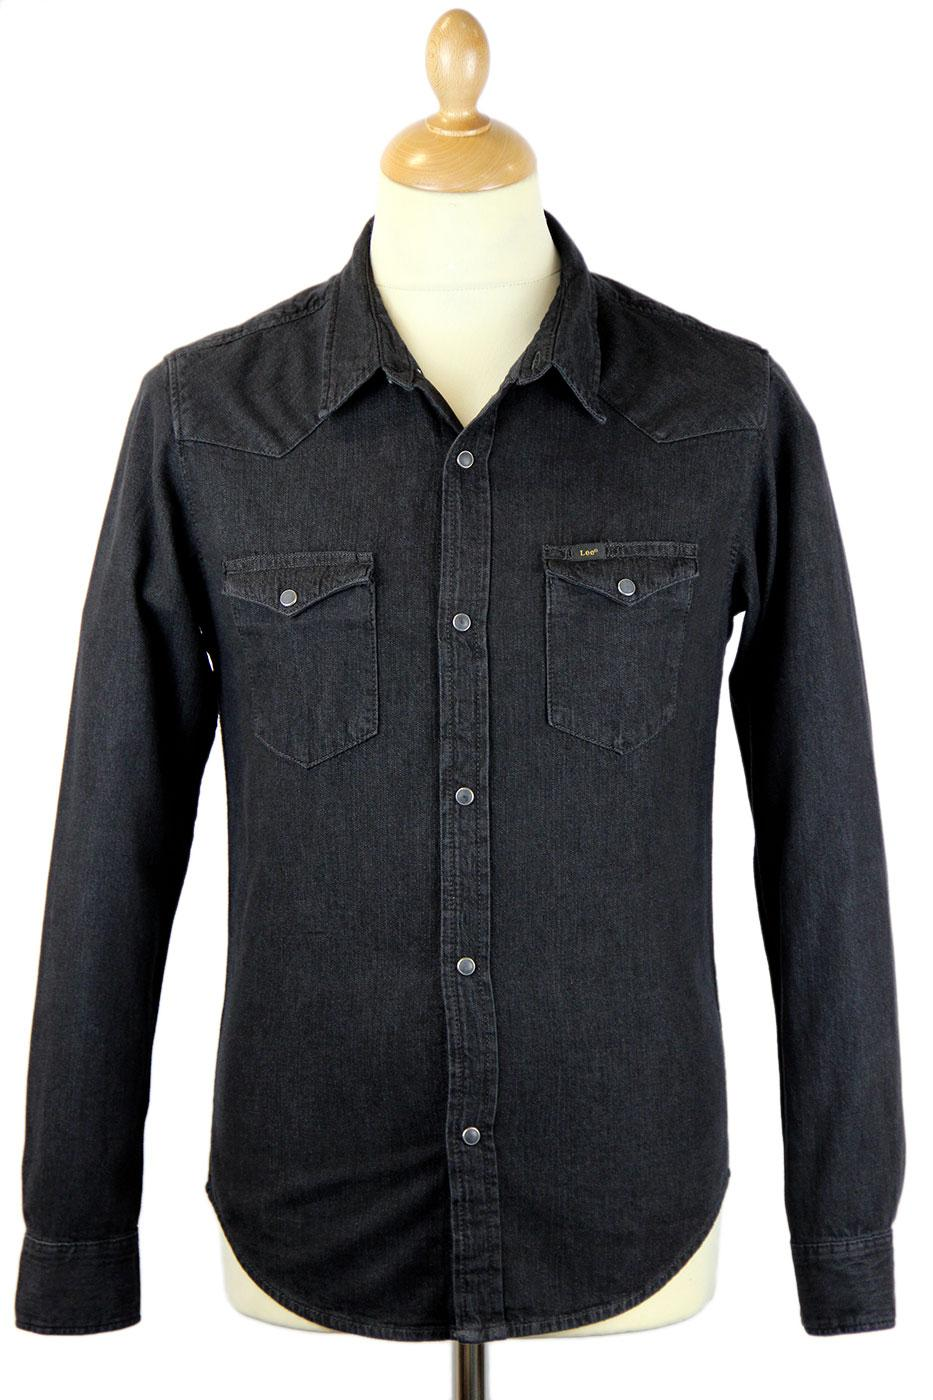 162b37c128 LEE Slim Fit Retro Indie Mod Denim Western Shirt Pitch Black